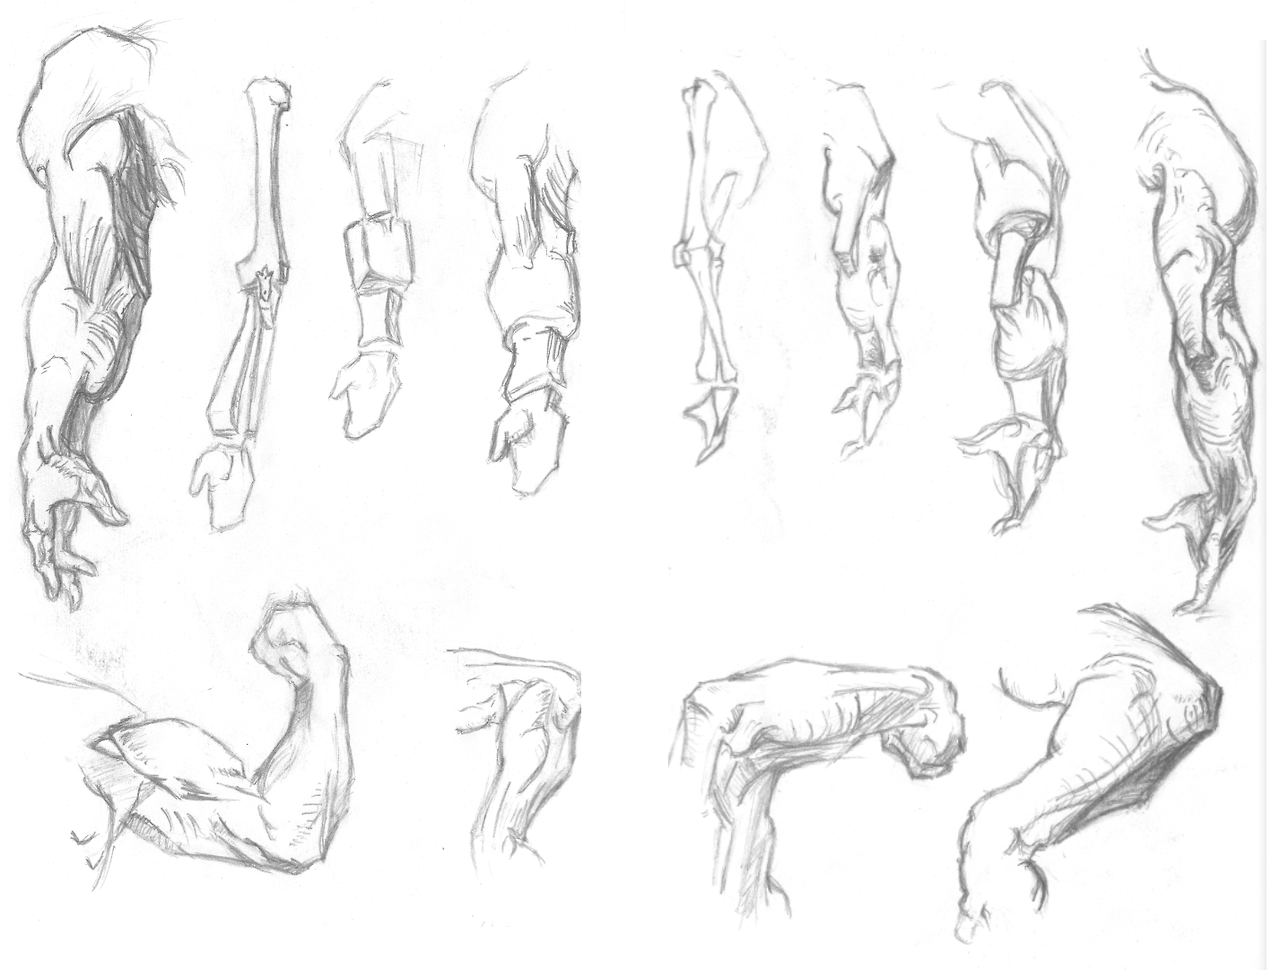 1280x970 Photos How To Draw Human Arms,